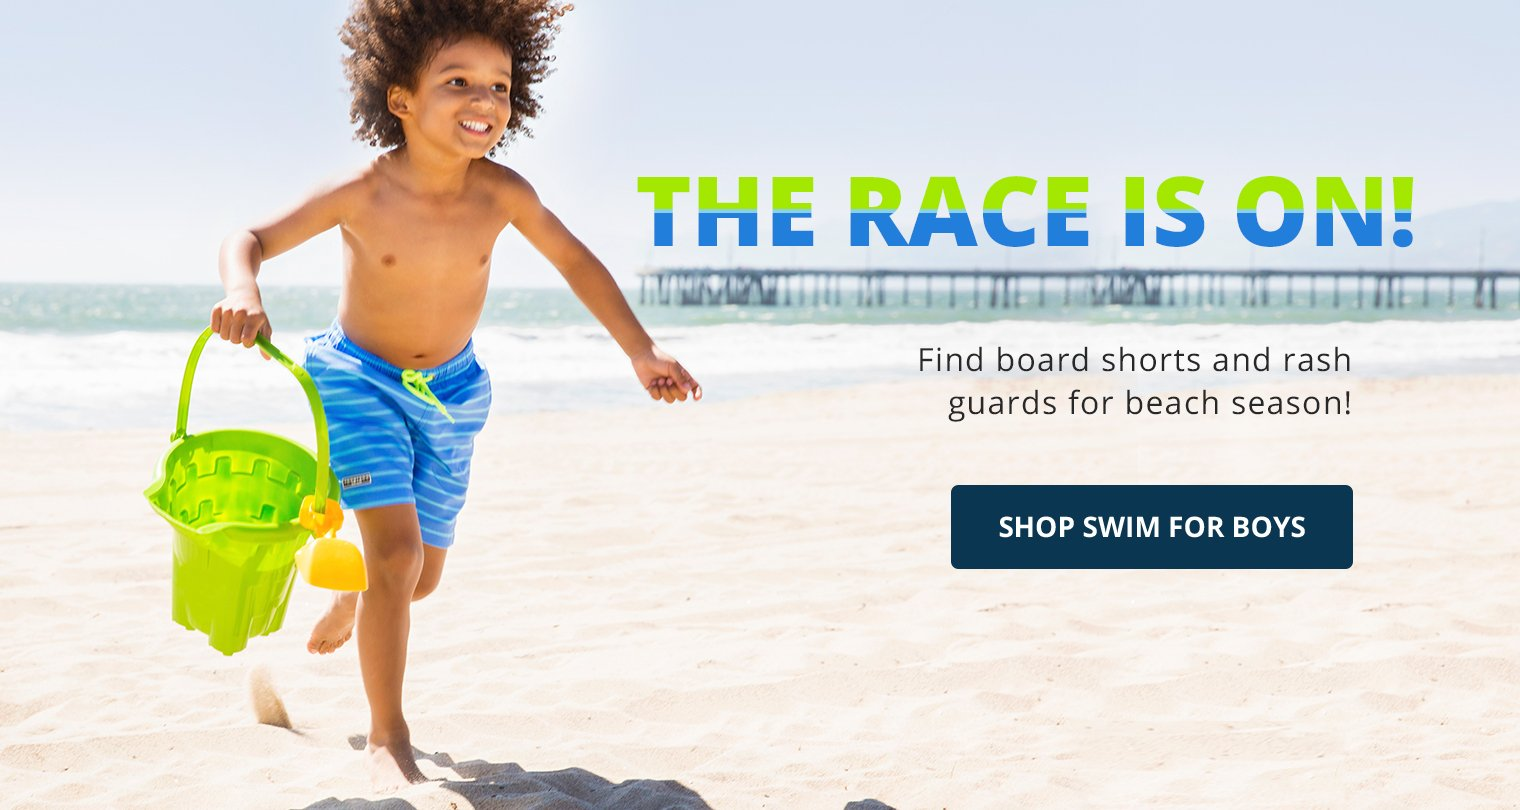 Image of a boy in board shorts playing at the beach. The race is on! Find board shorts and rash guards for beach season! Shop Swim for boys.